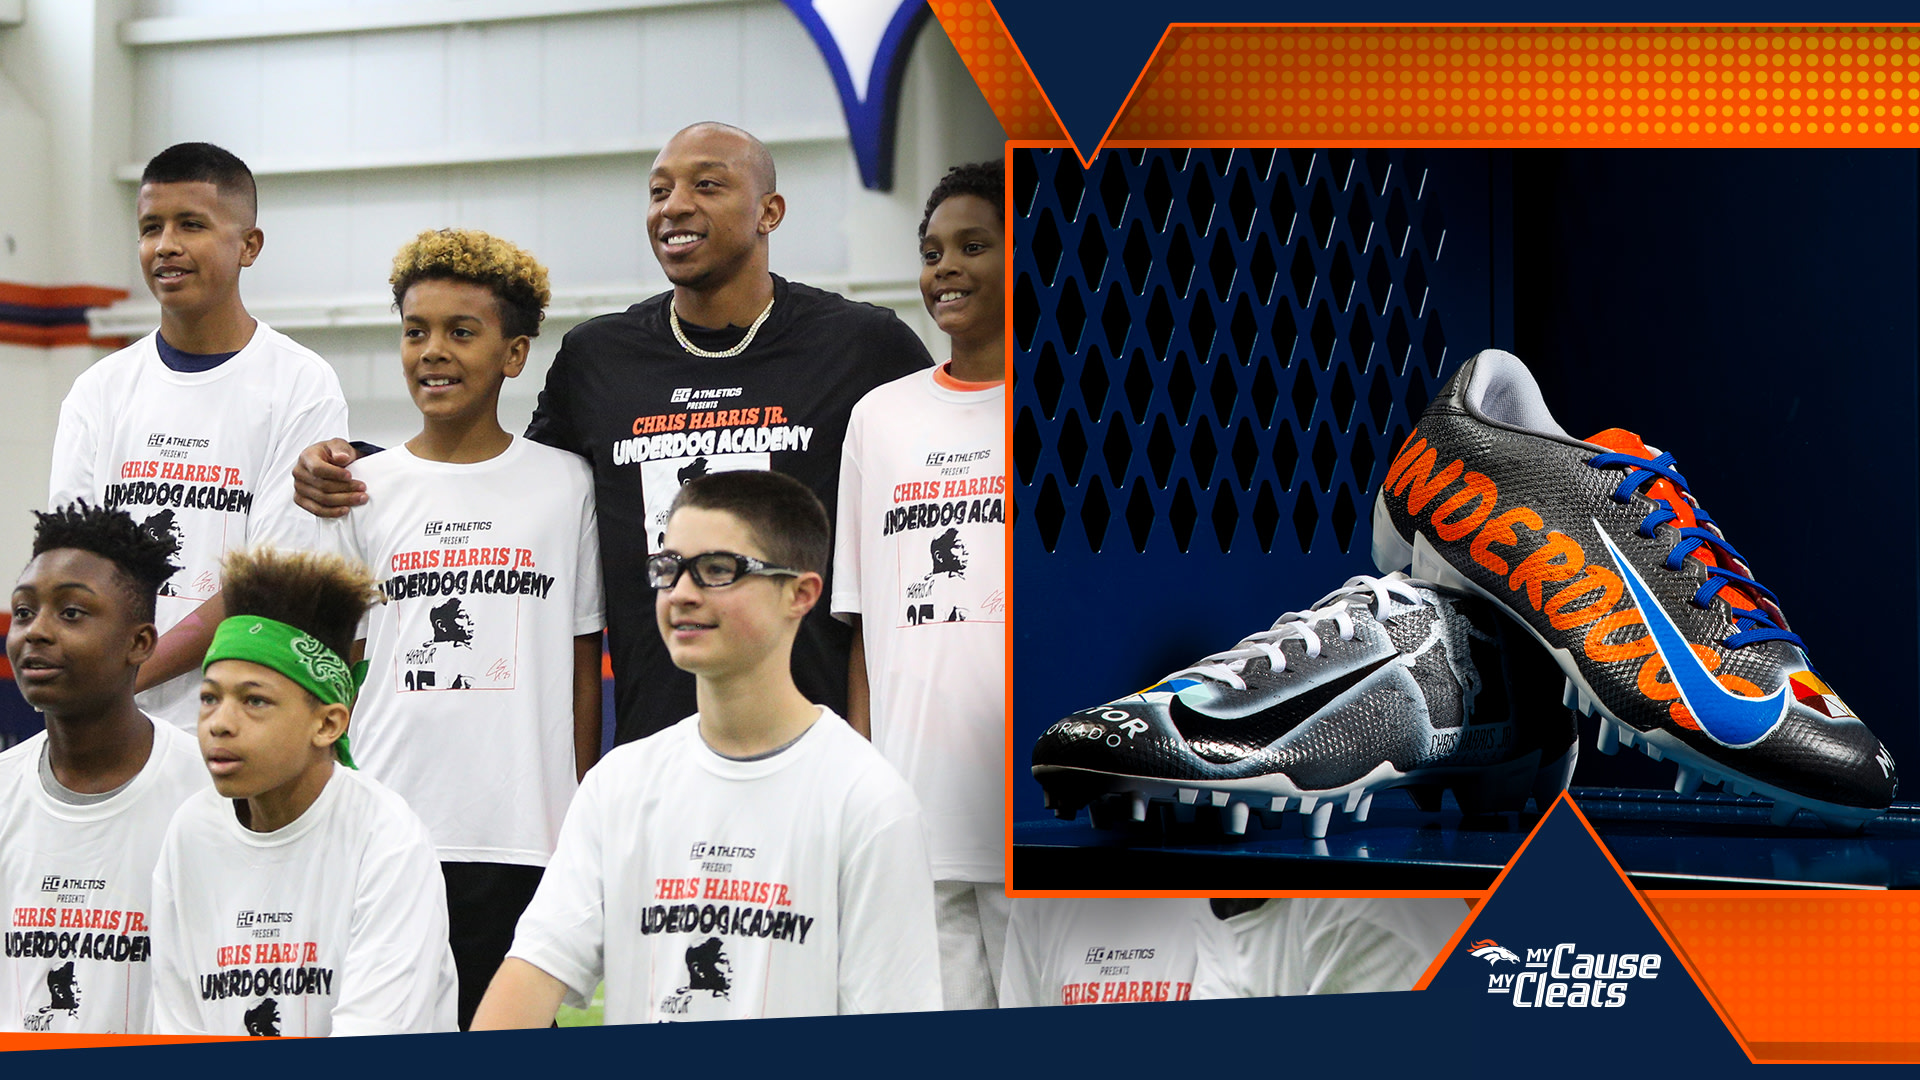 CHRIS HARRIS JR. FOUNDATION